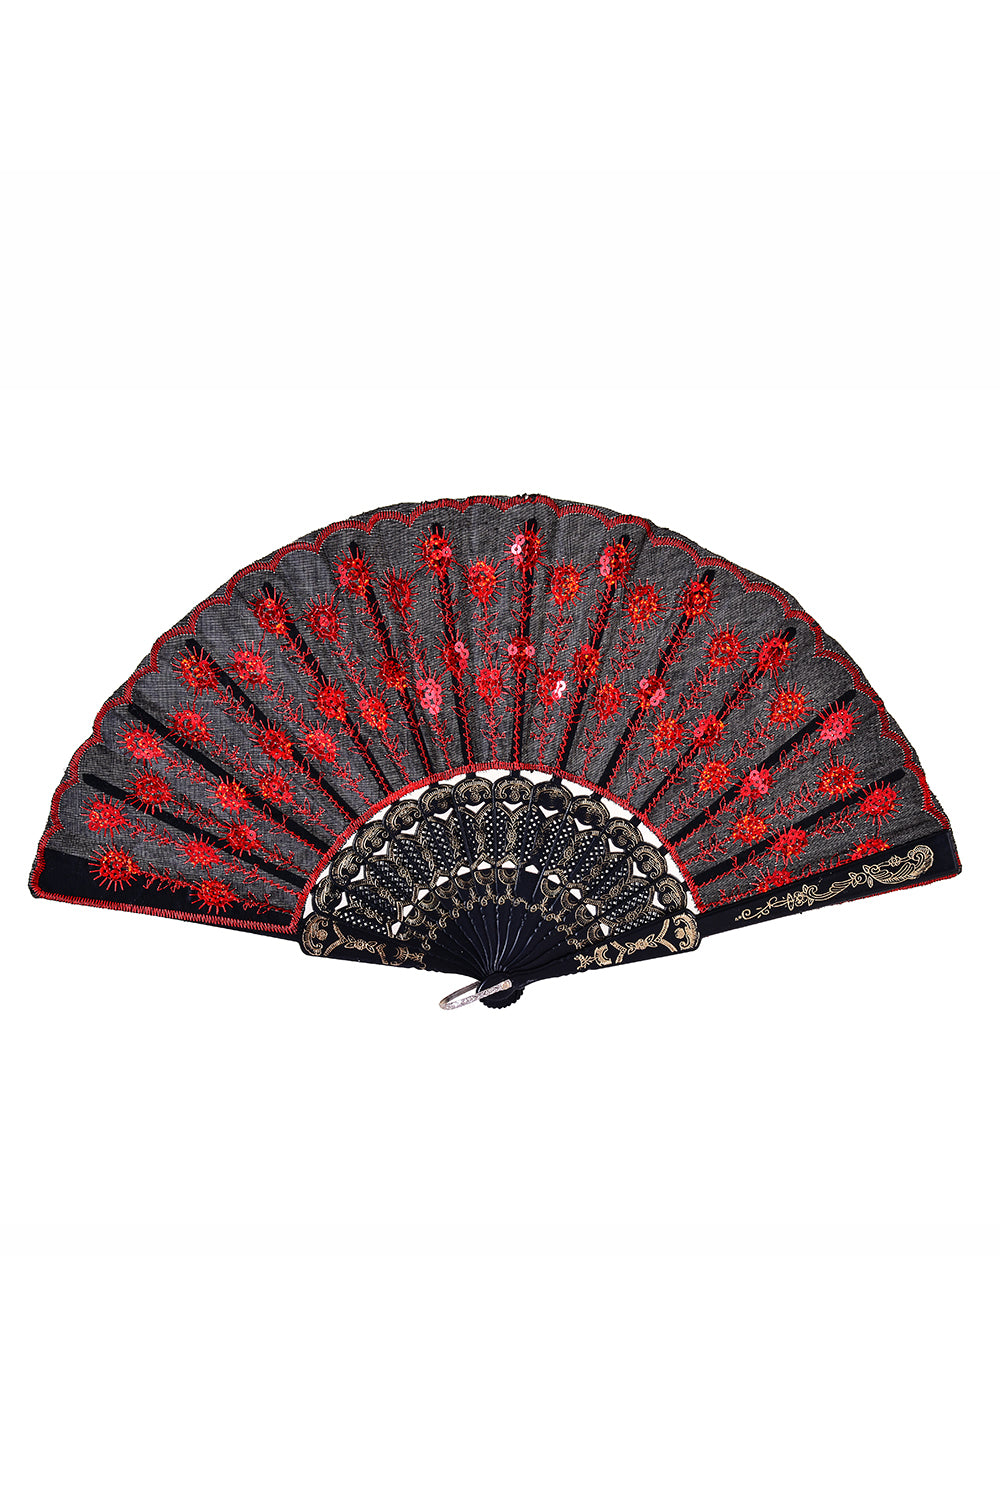 Peacock Sequin Fan - Red